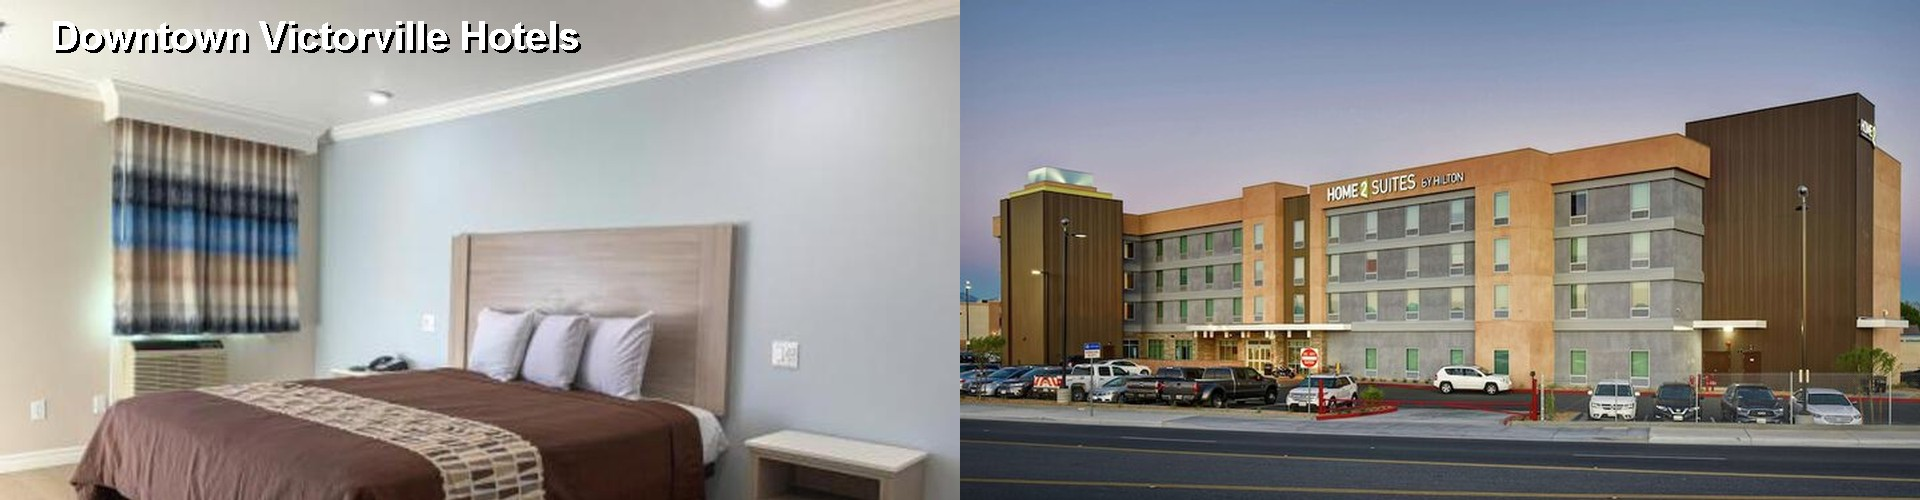 5 Best Hotels near Downtown Victorville